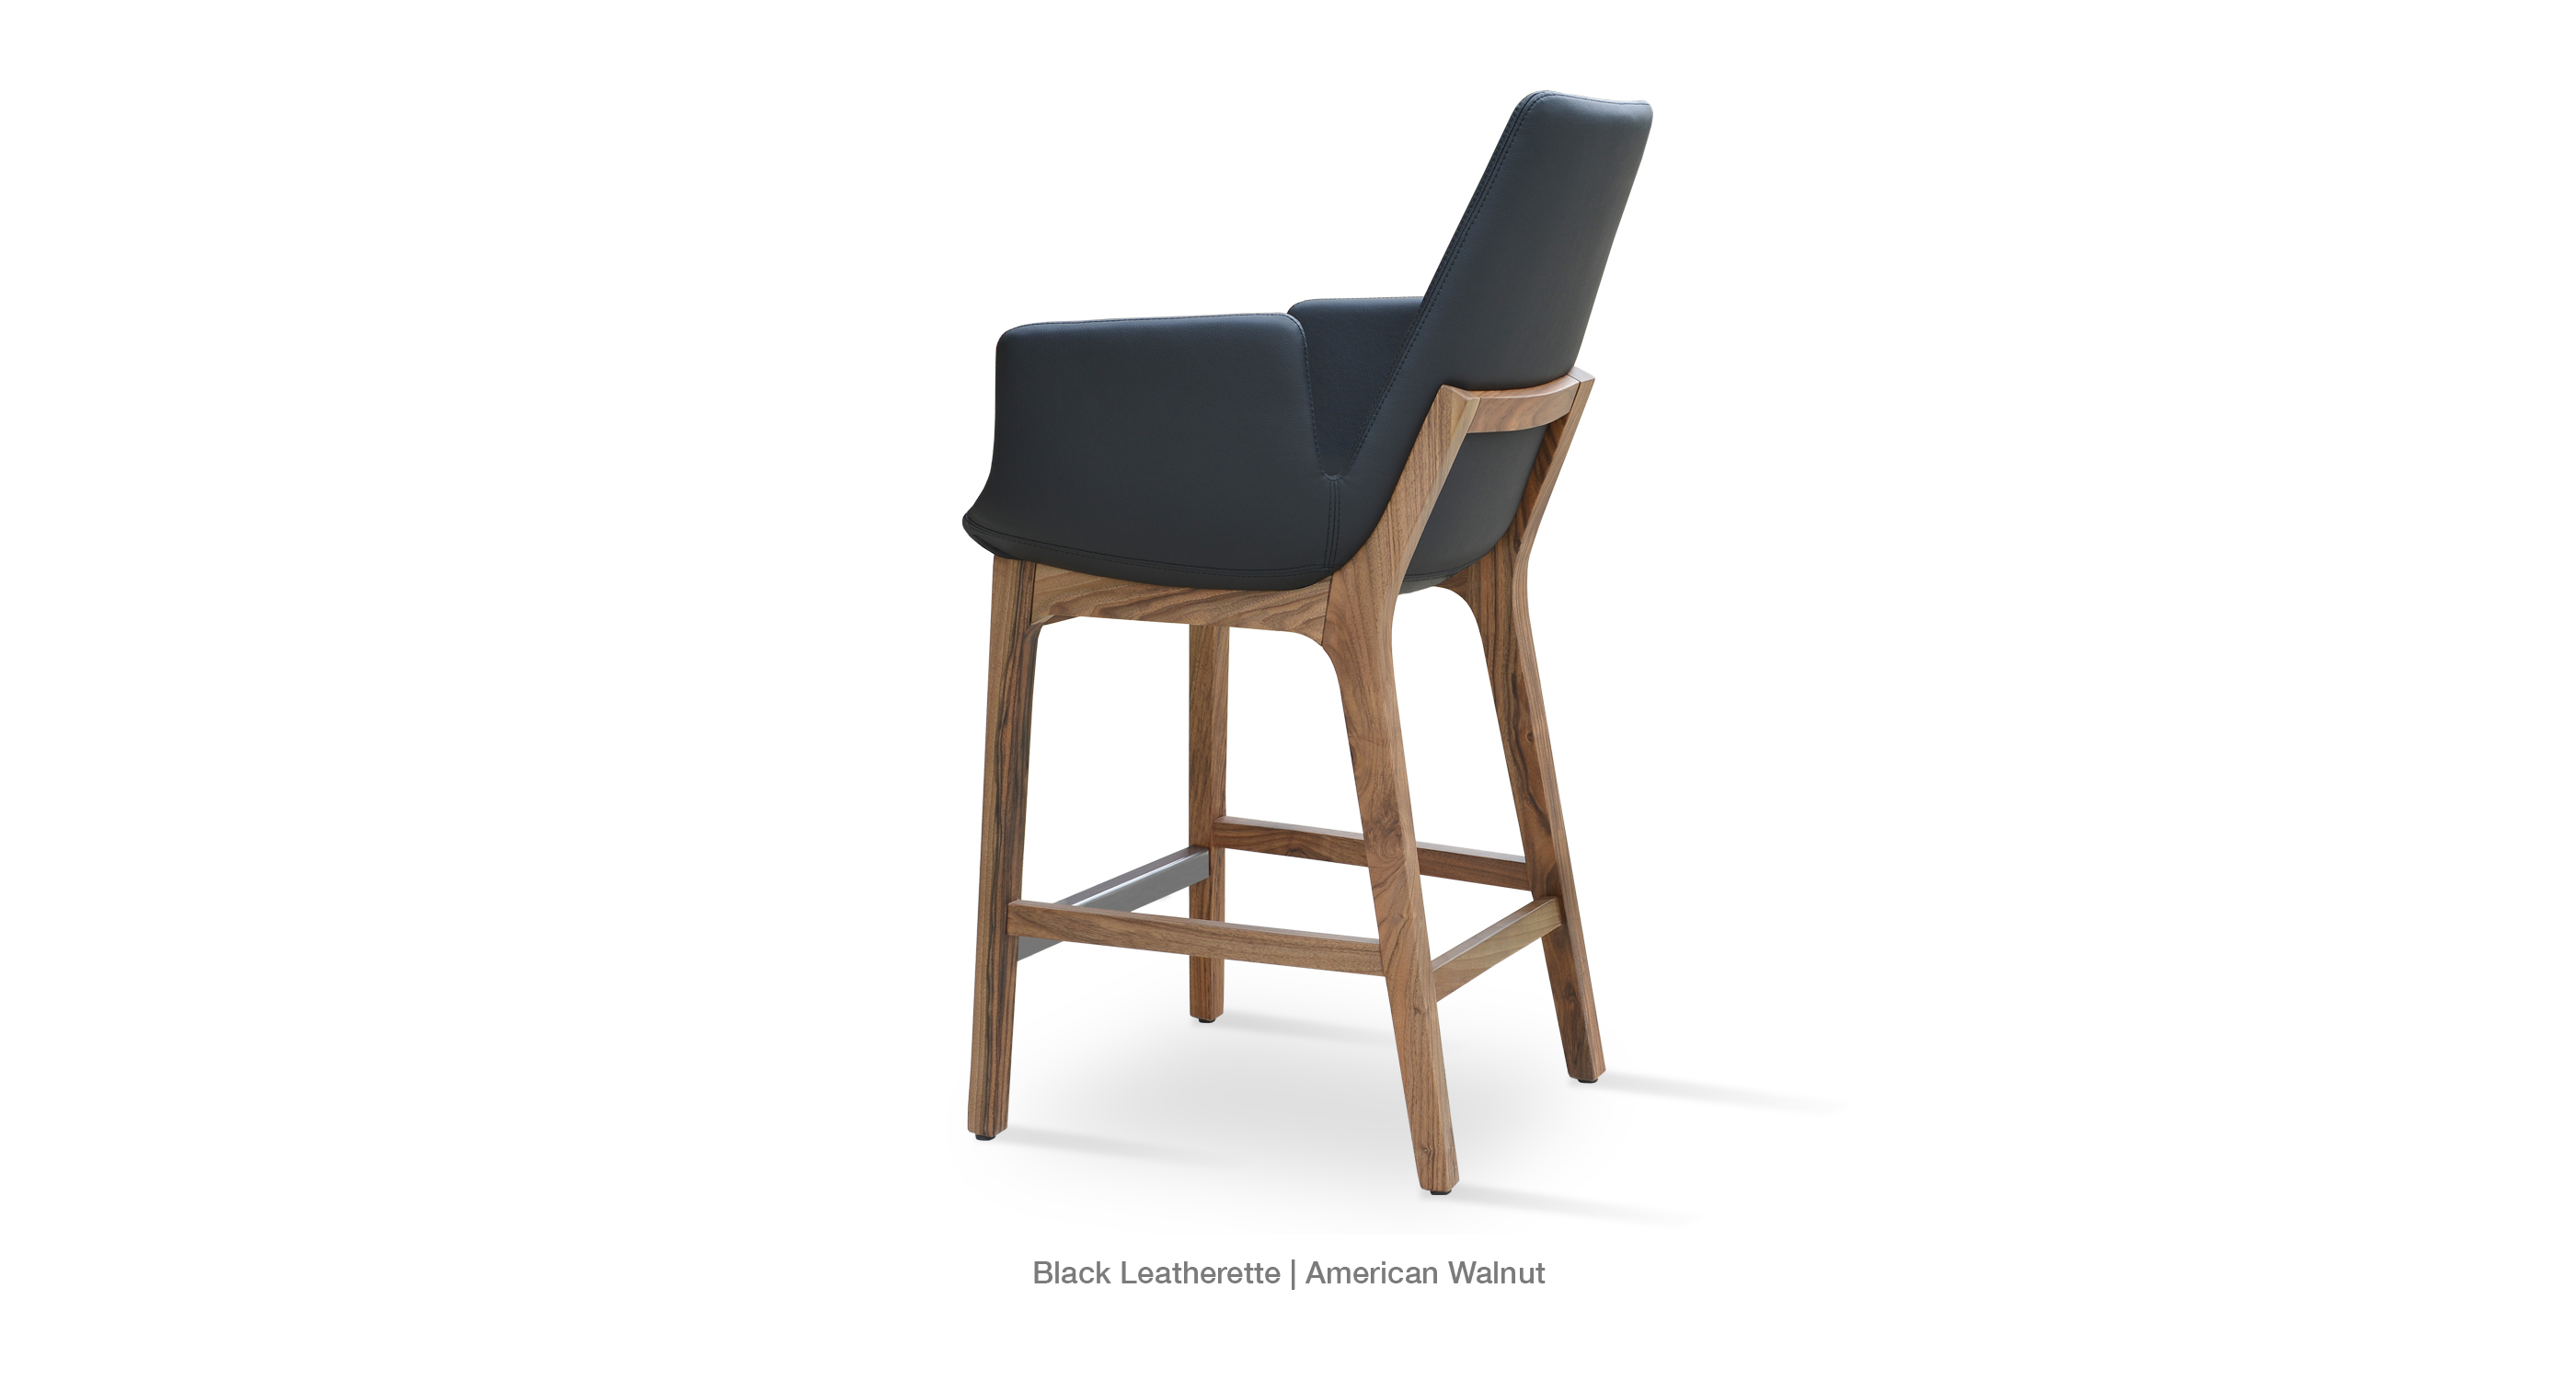 Superb img of Eiffel Wood Arm Contemporary Stool Chairs sohoConcept with #674934 color and 2800x1500 pixels